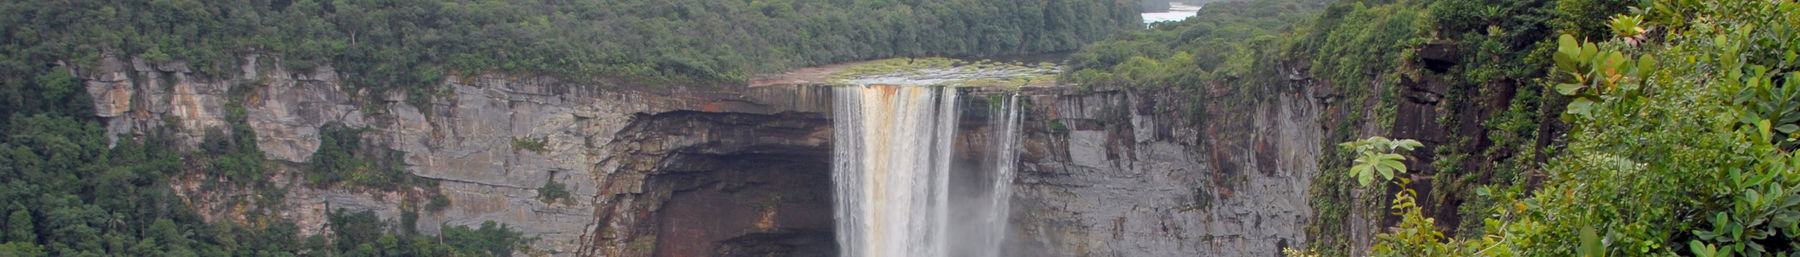 Kaieteur Falls on Potaro River in central Guyana